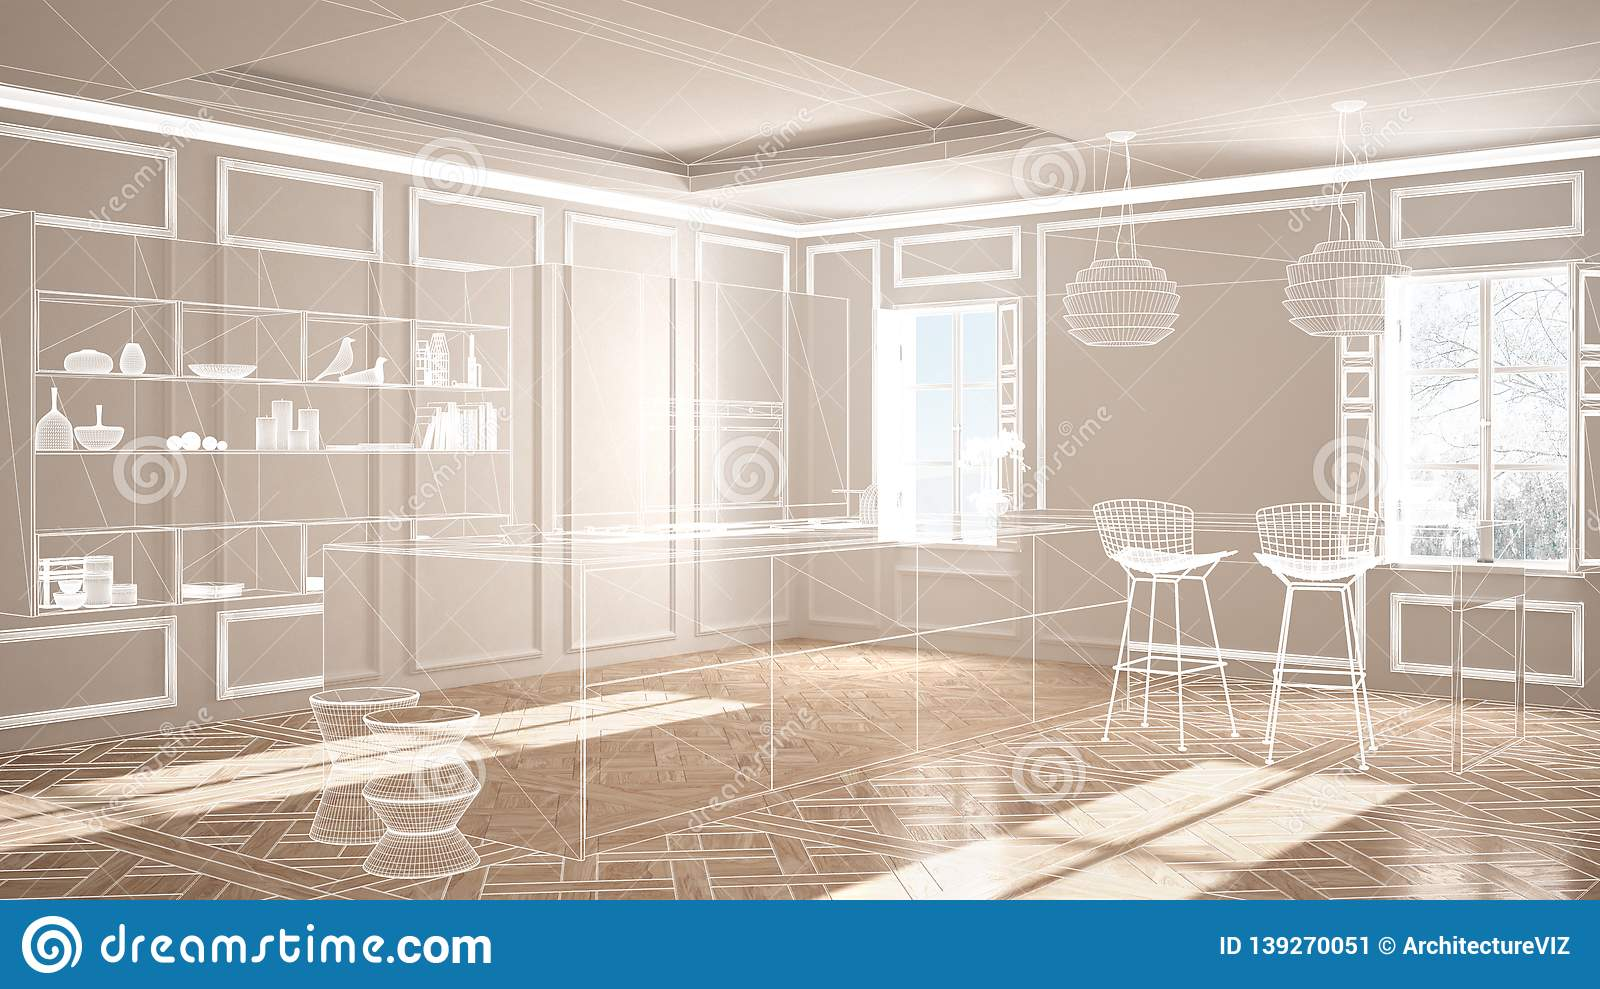 Empty White Interior With Parquet Floor And Stucco Walls, Custom  Architecture Design Project, White